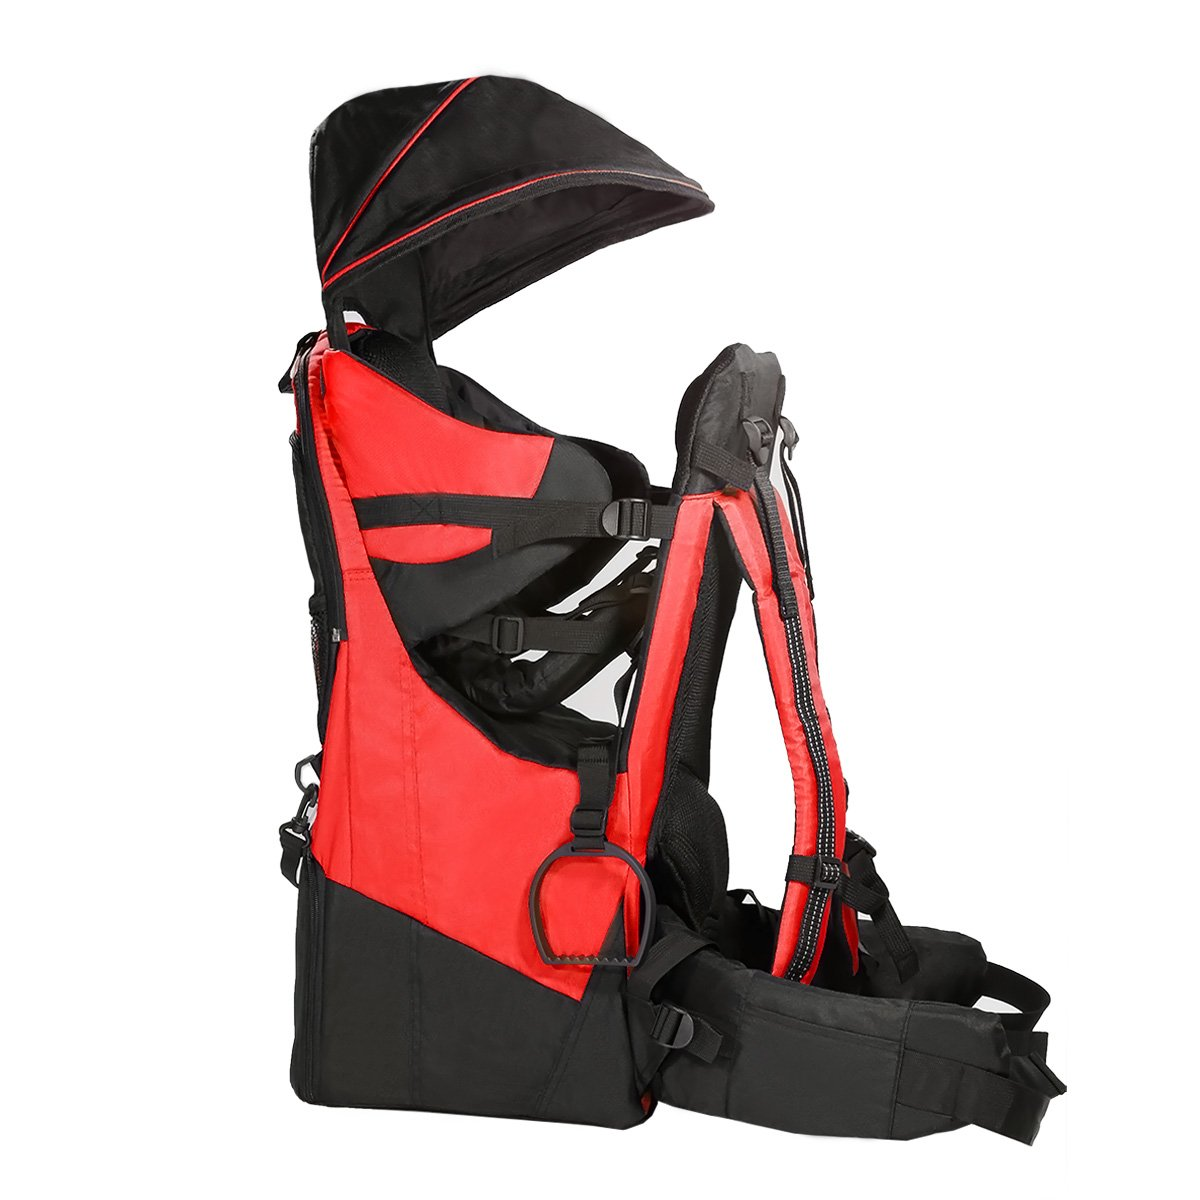 Best Rated in Child Carrier Backpacks & Helpful Customer